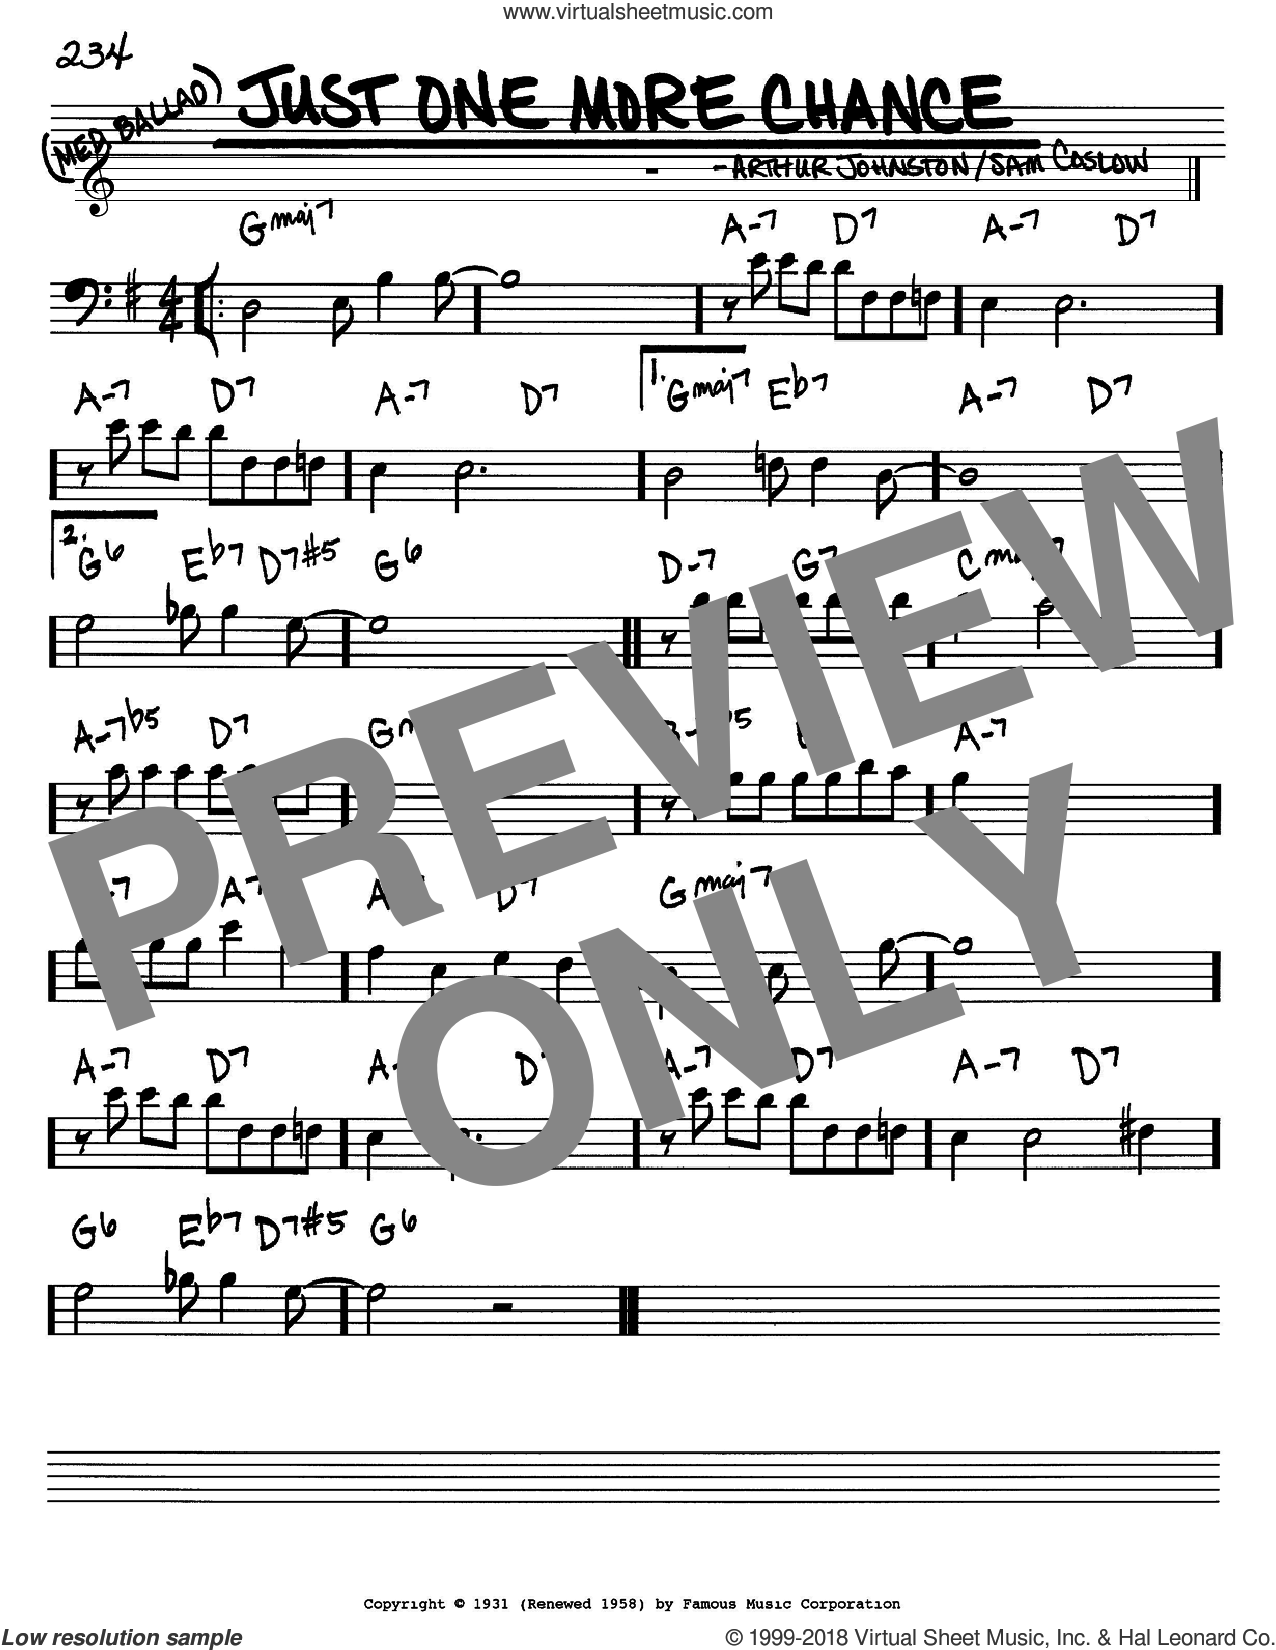 Just One More Chance sheet music for voice and other instruments (bass clef) by Bing Crosby, Arthur Johnston and Sam Coslow, intermediate skill level